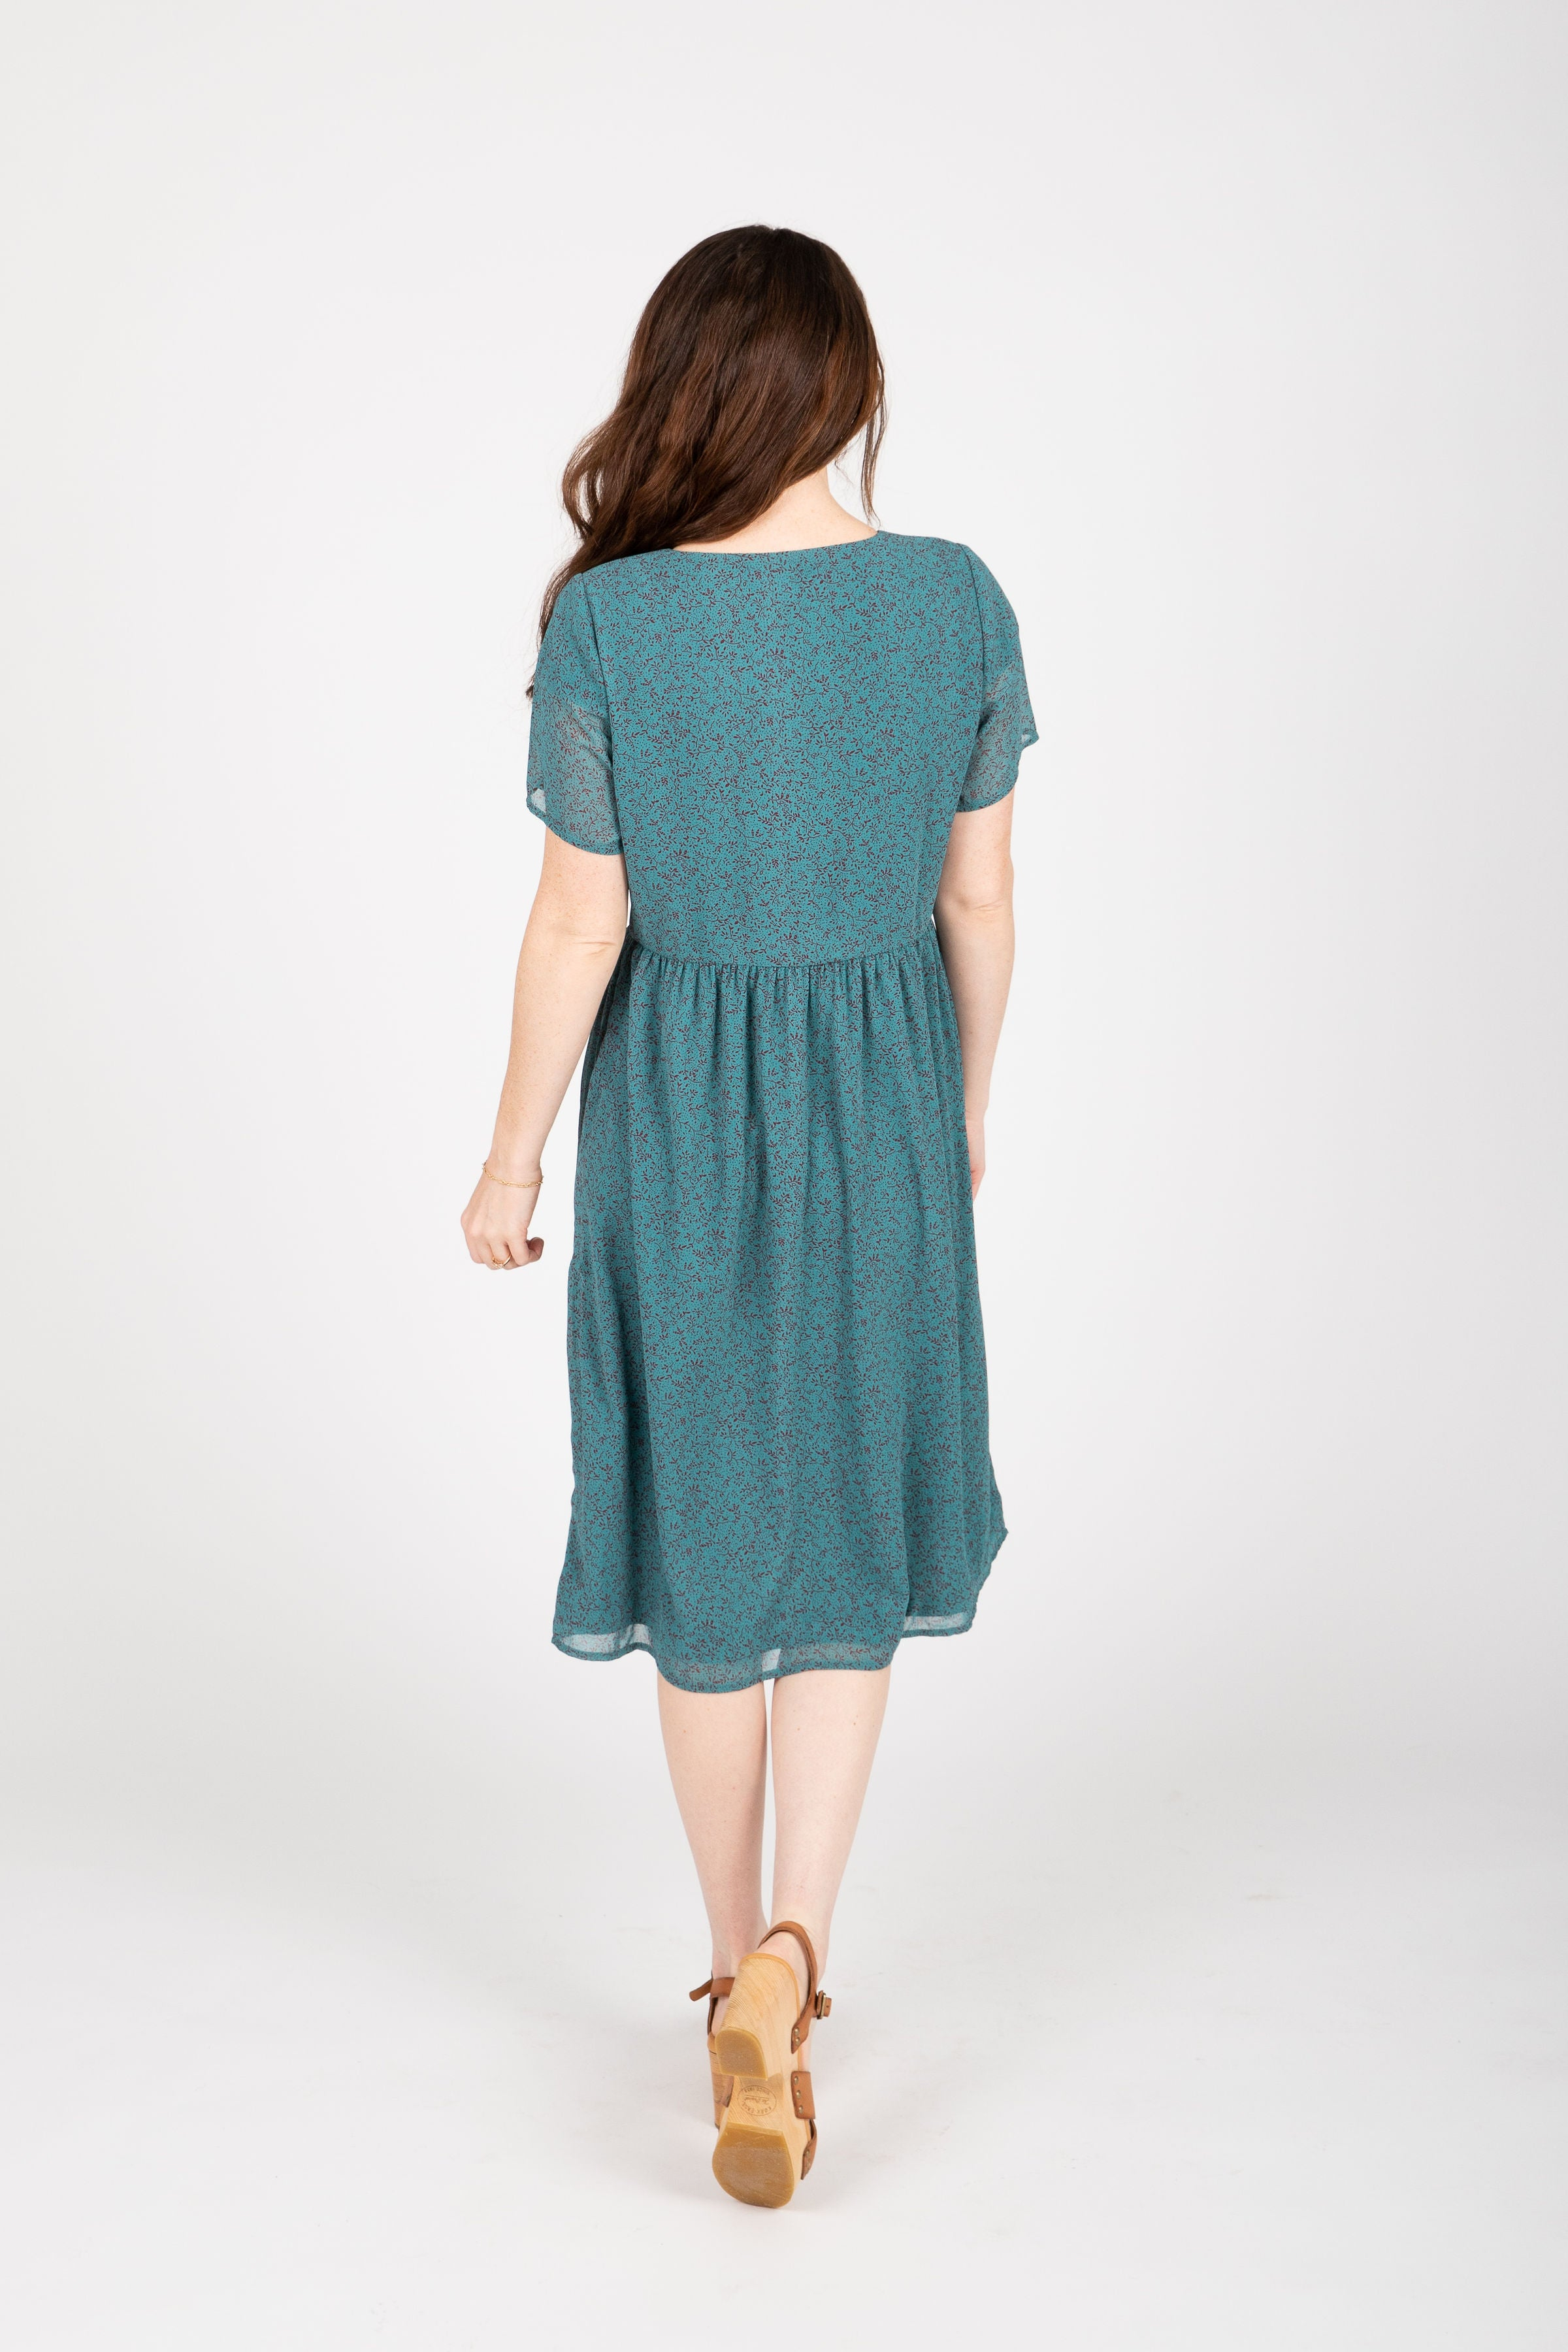 Piper & Scoot: The Standout Pocket Button Dress in Teal